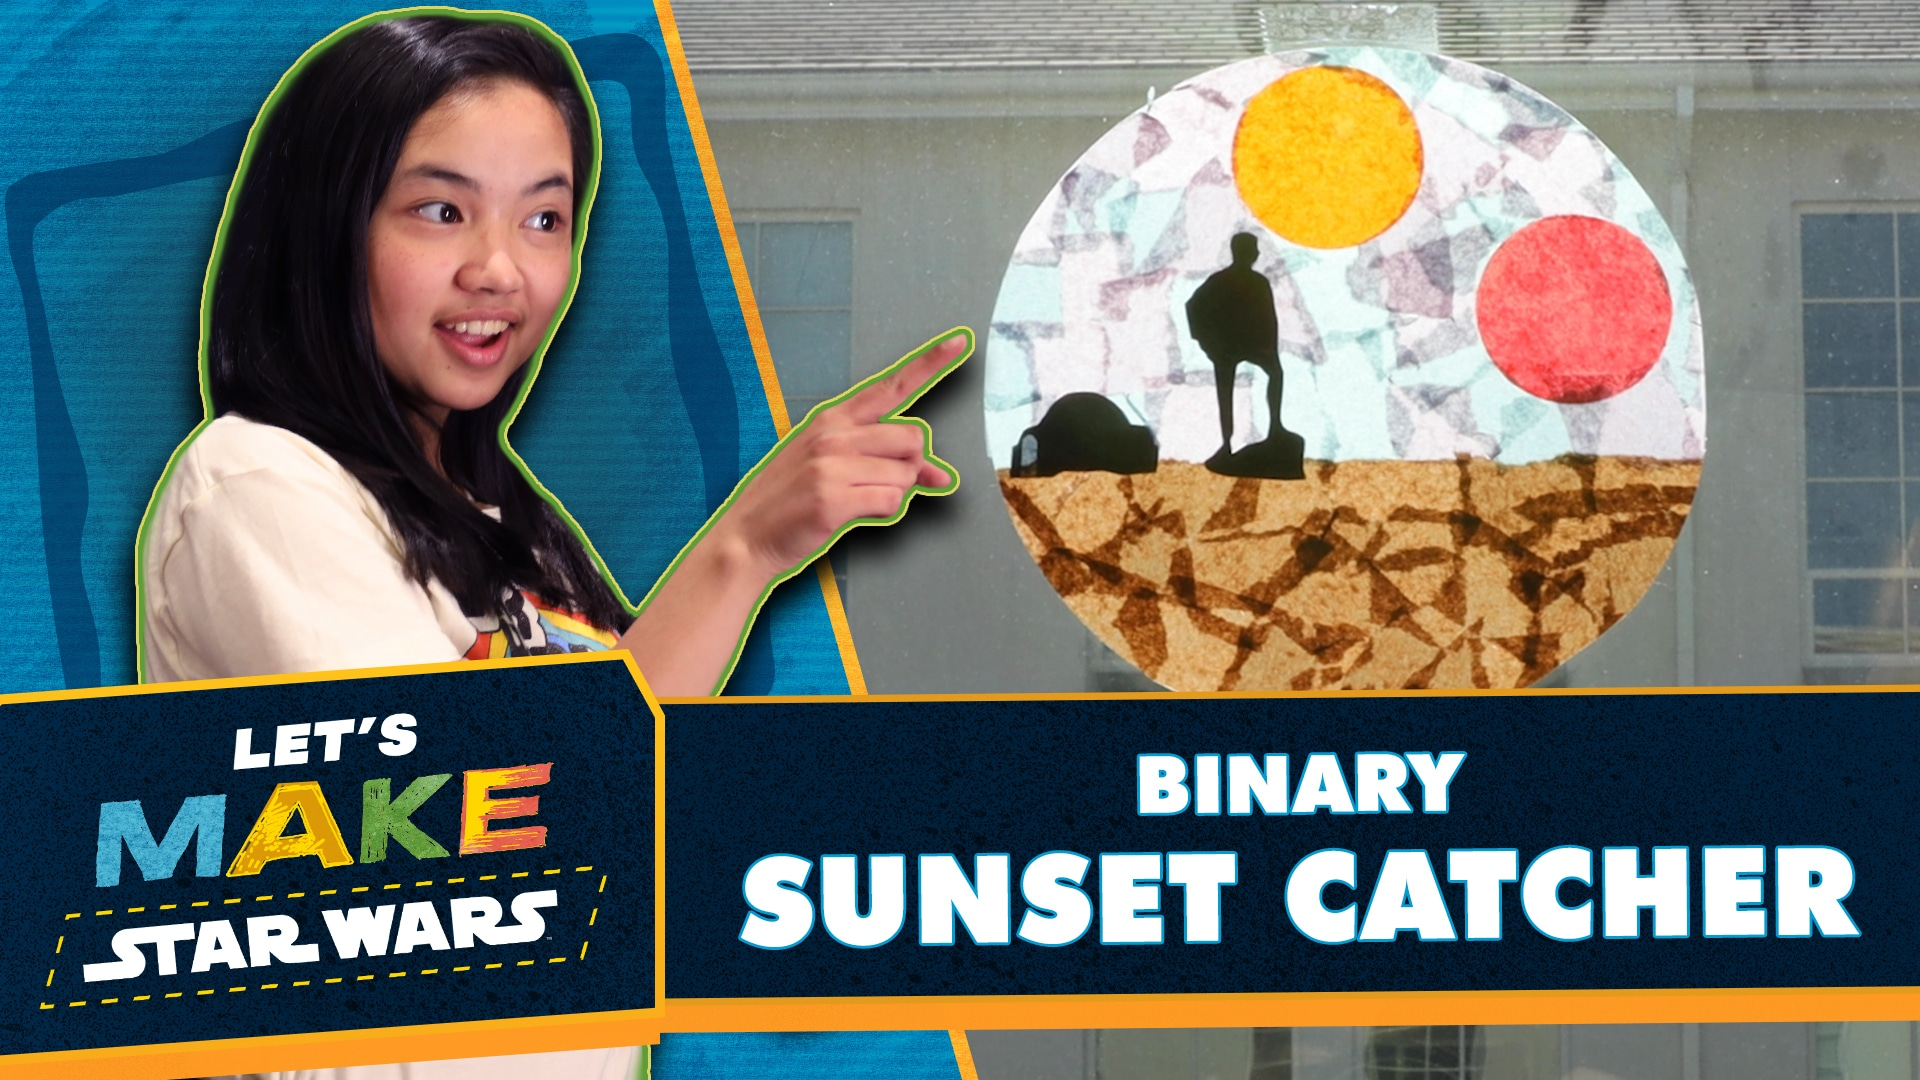 How to Make a Binary Sunset Catcher | Let's Make Star Wars